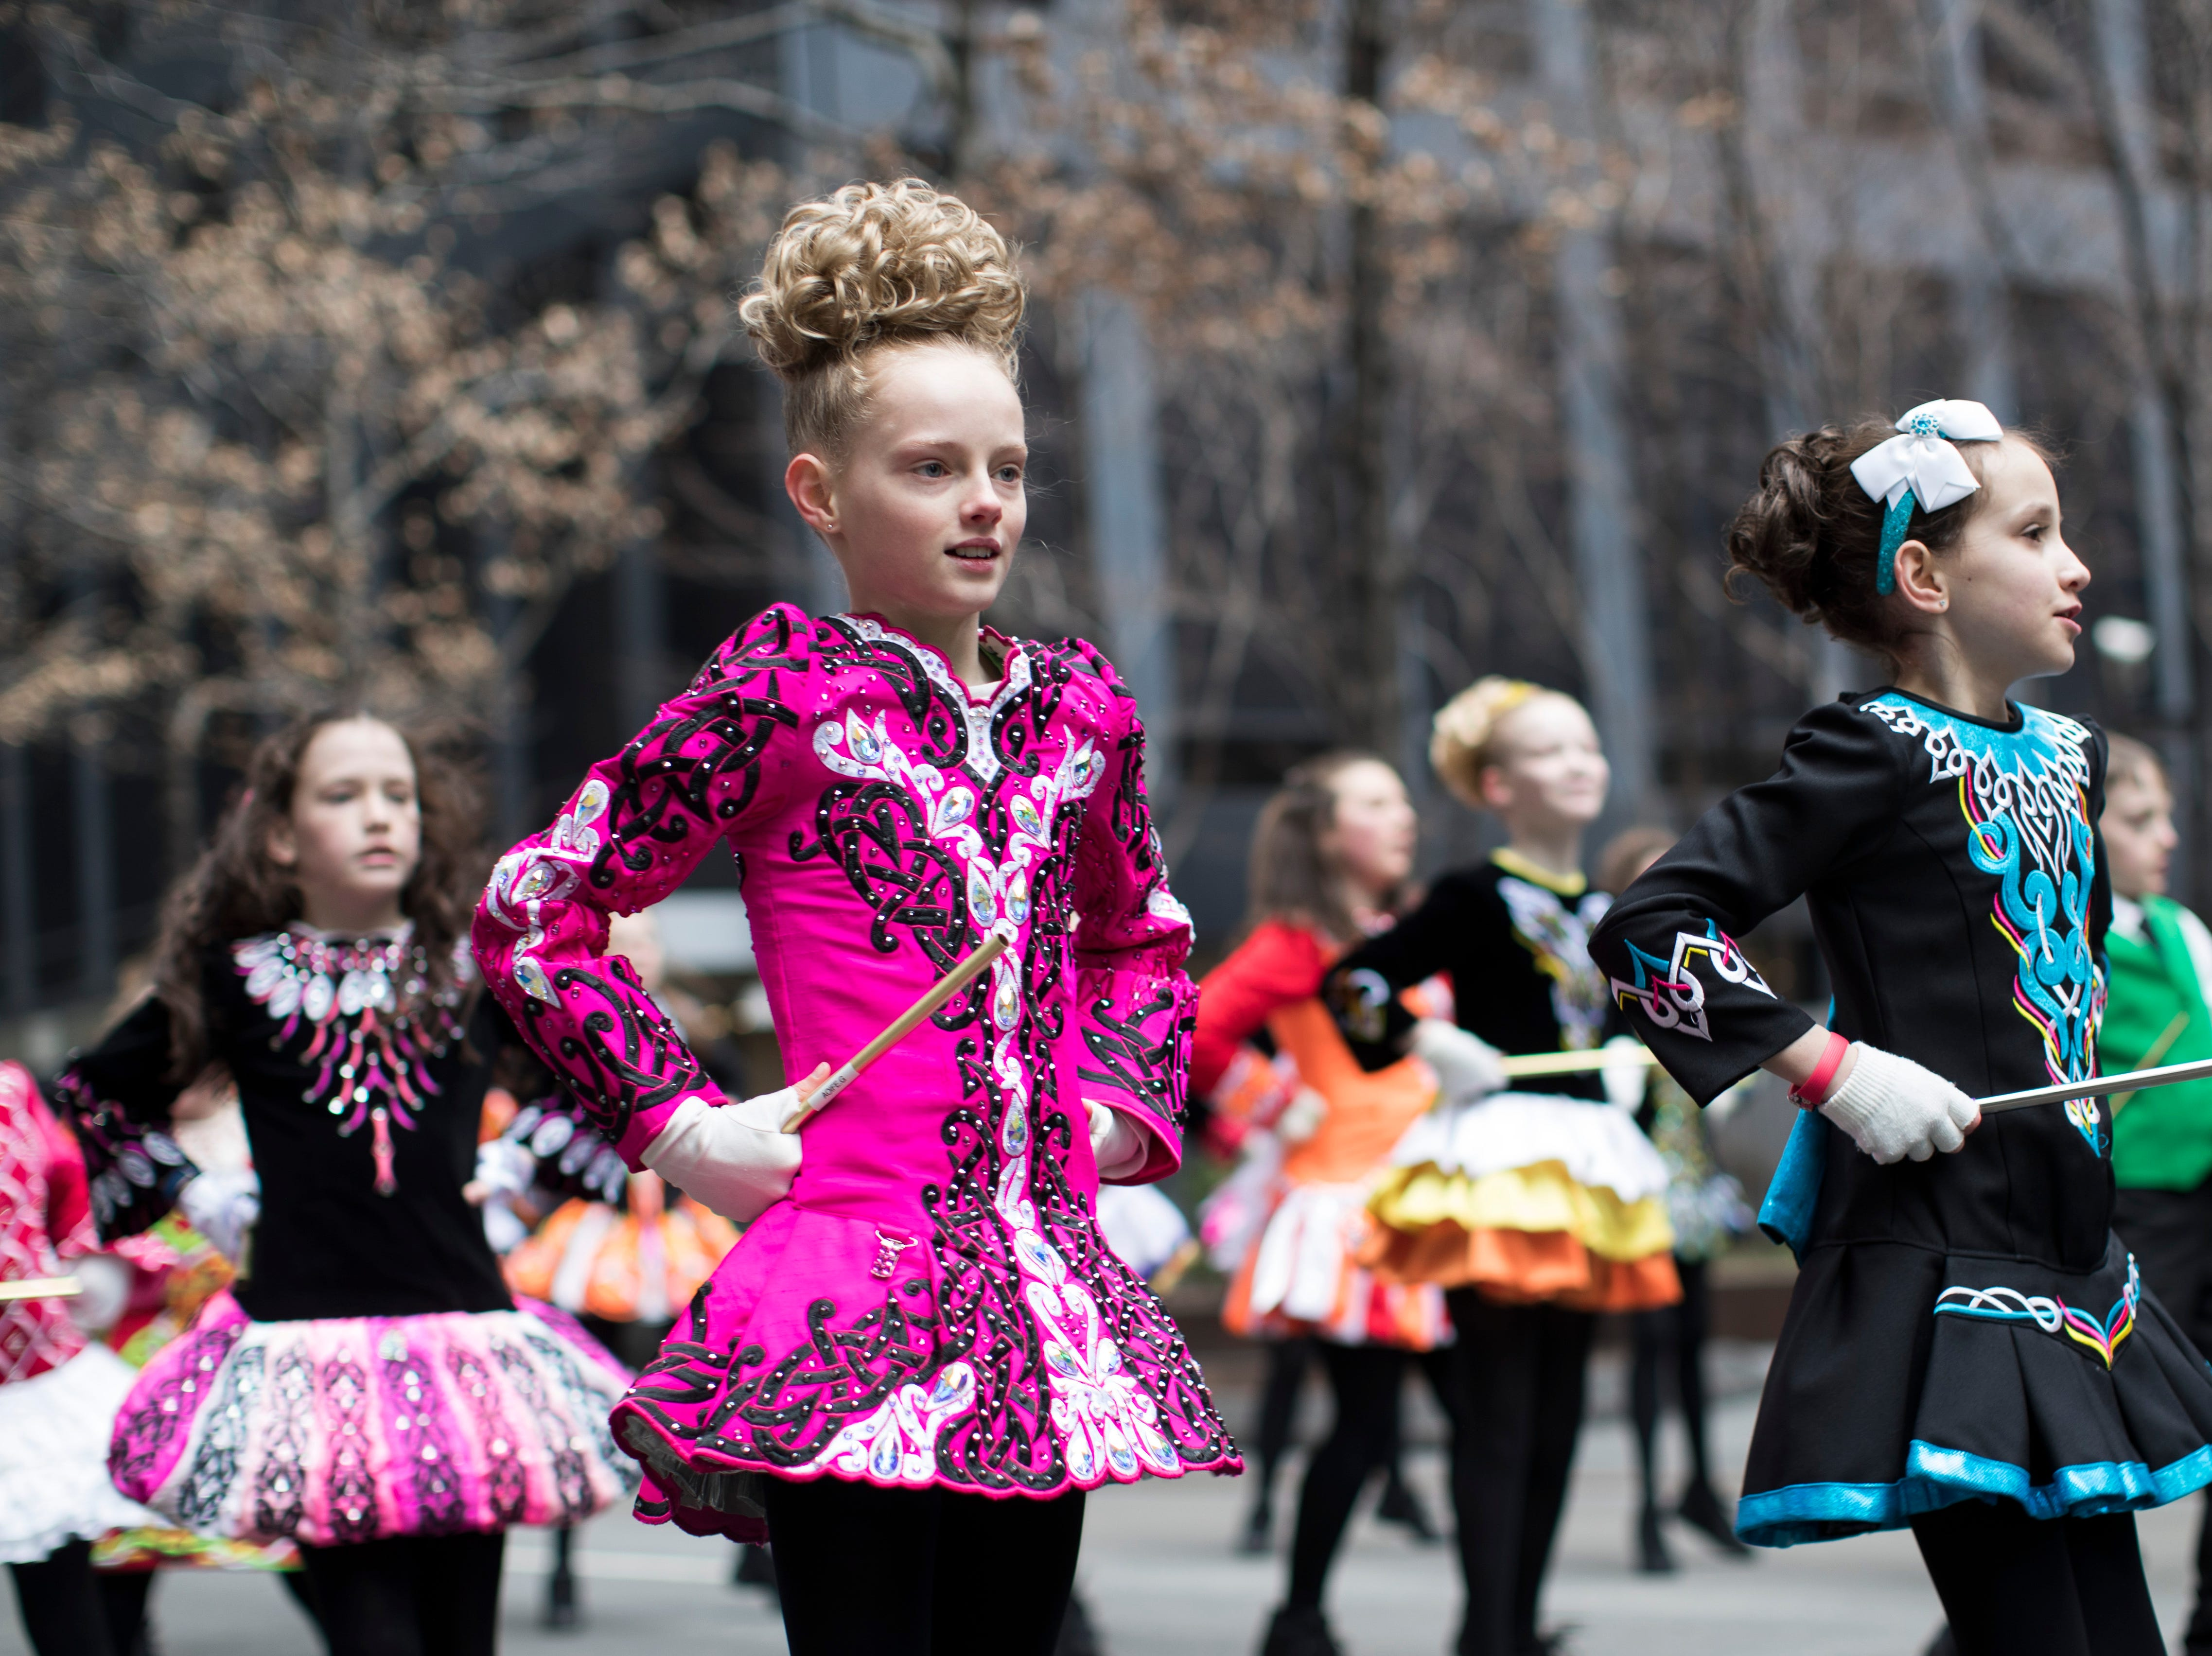 An Irish dance group rehearses ahead of participating in the St. Patrick's Day Parade, Saturday, March 16, 2019, in New York.